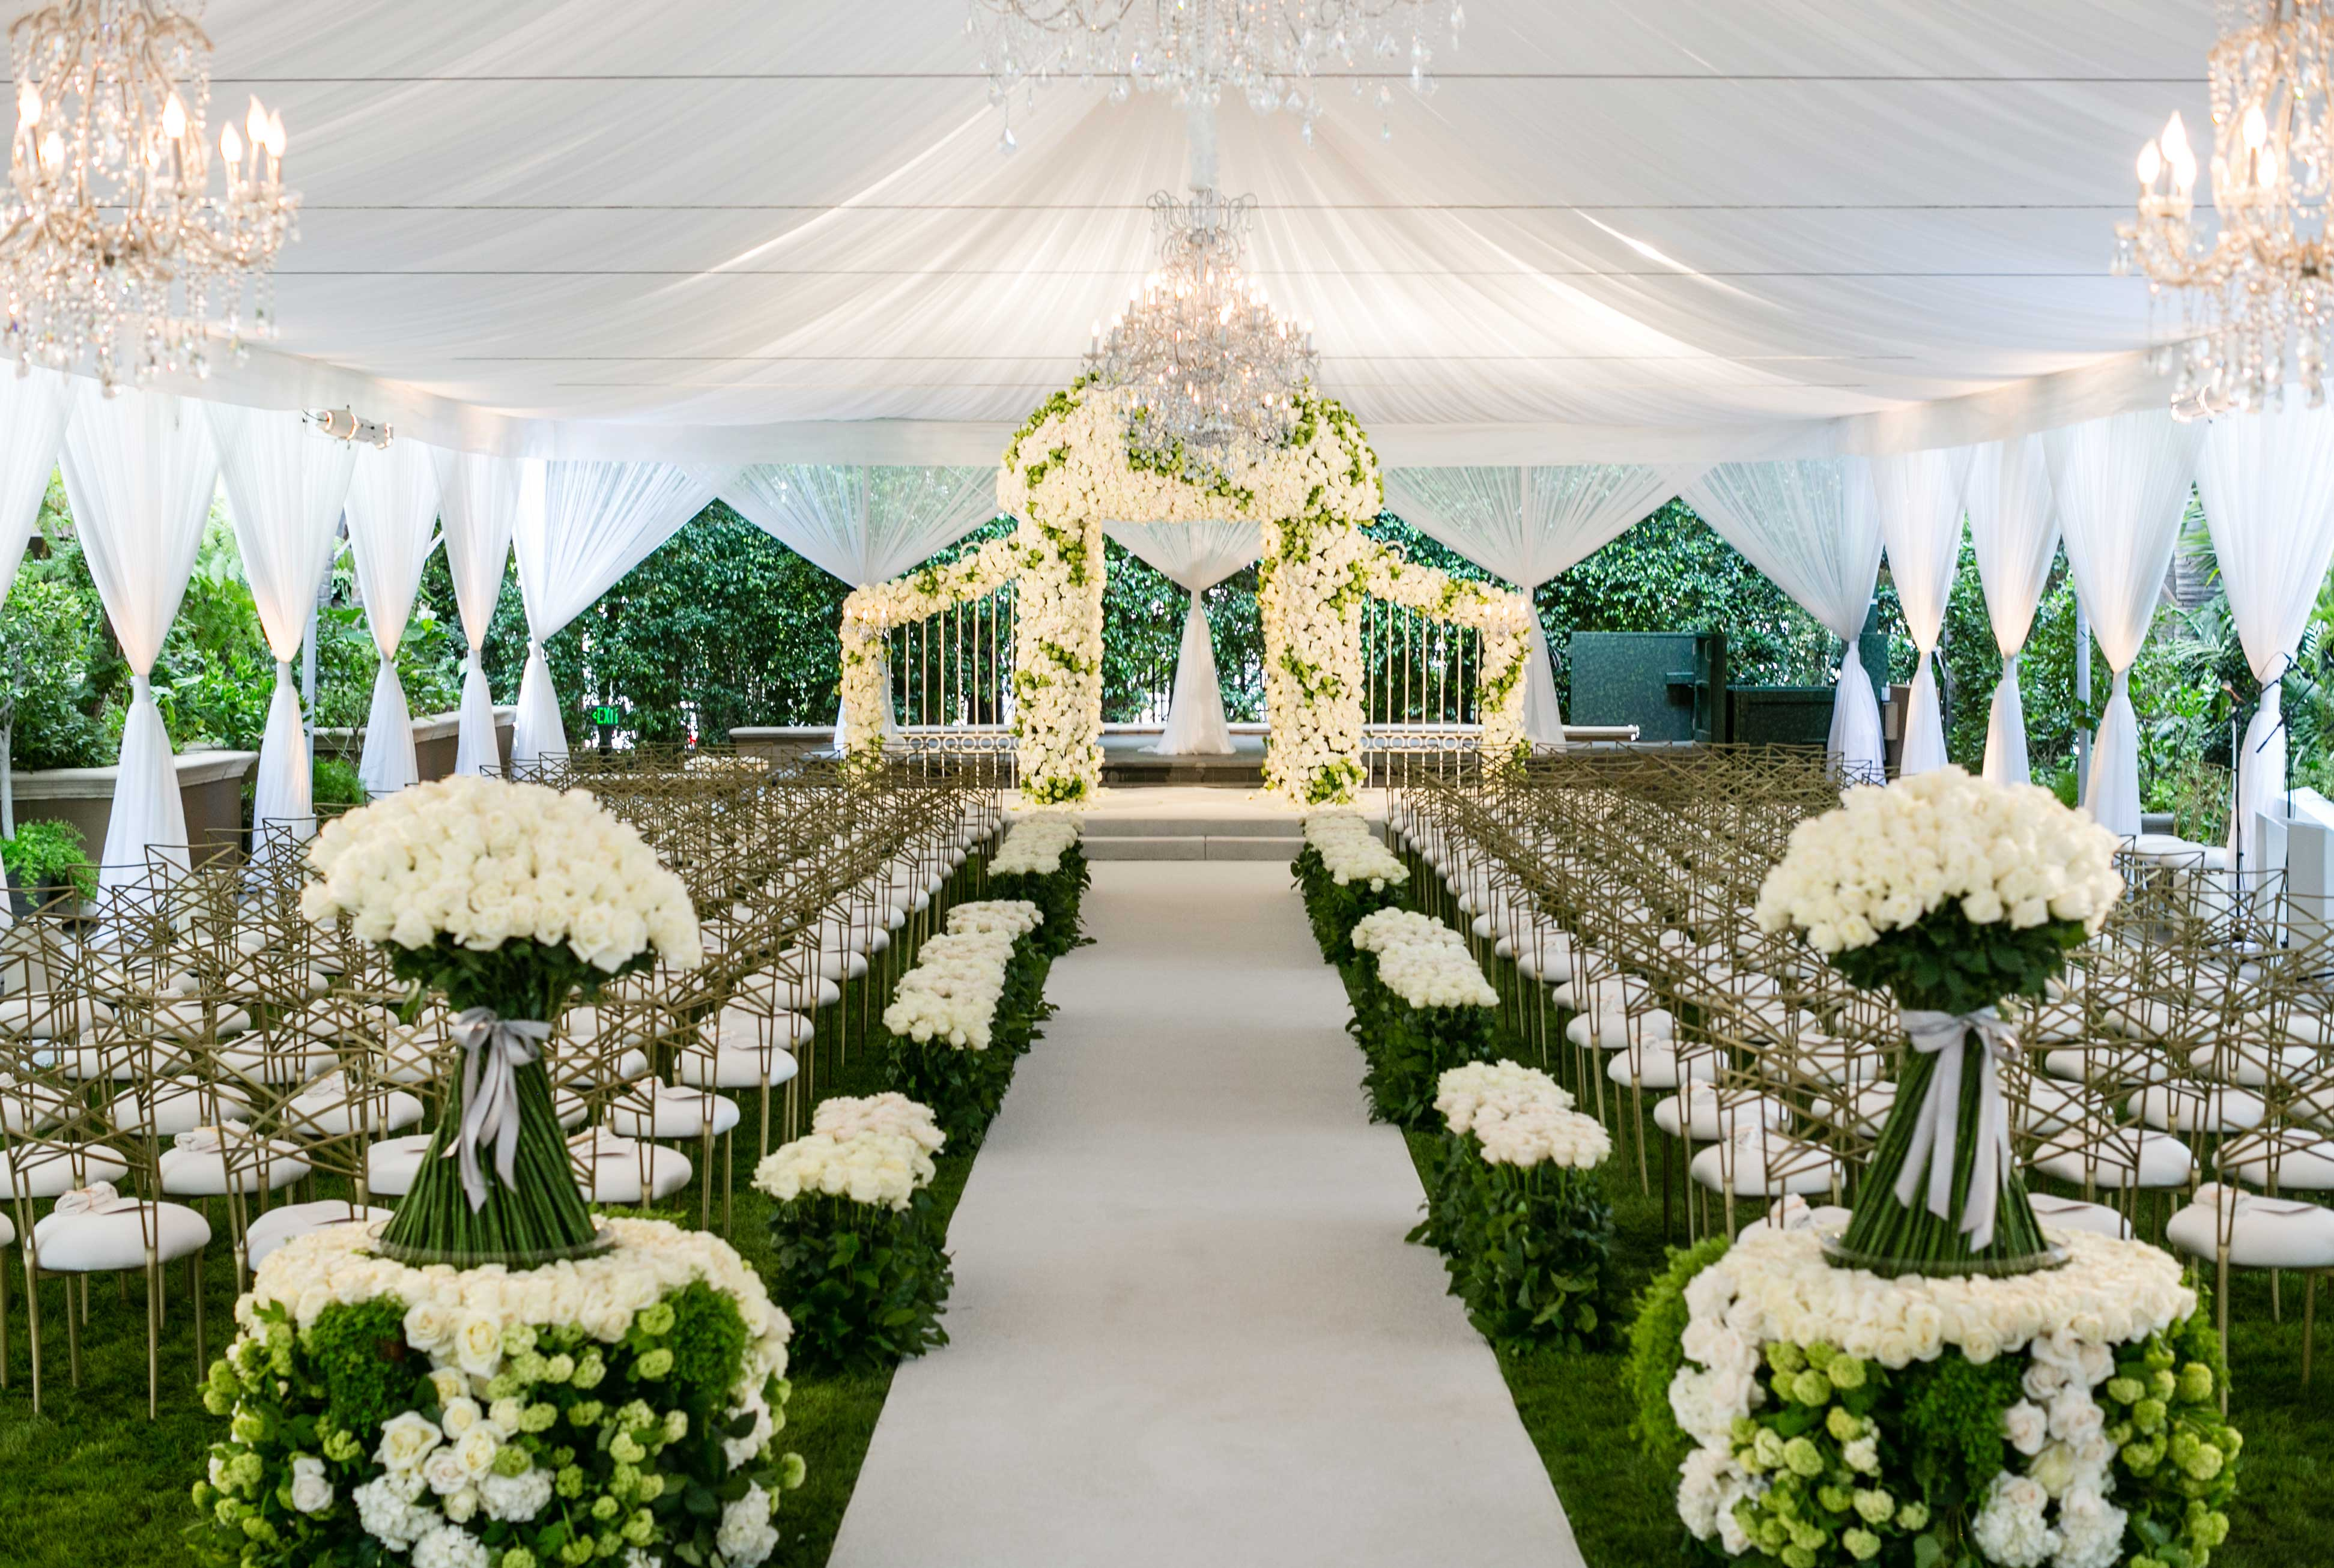 popular real wedding inside weddings white green ceremony design international event company revelry event designers